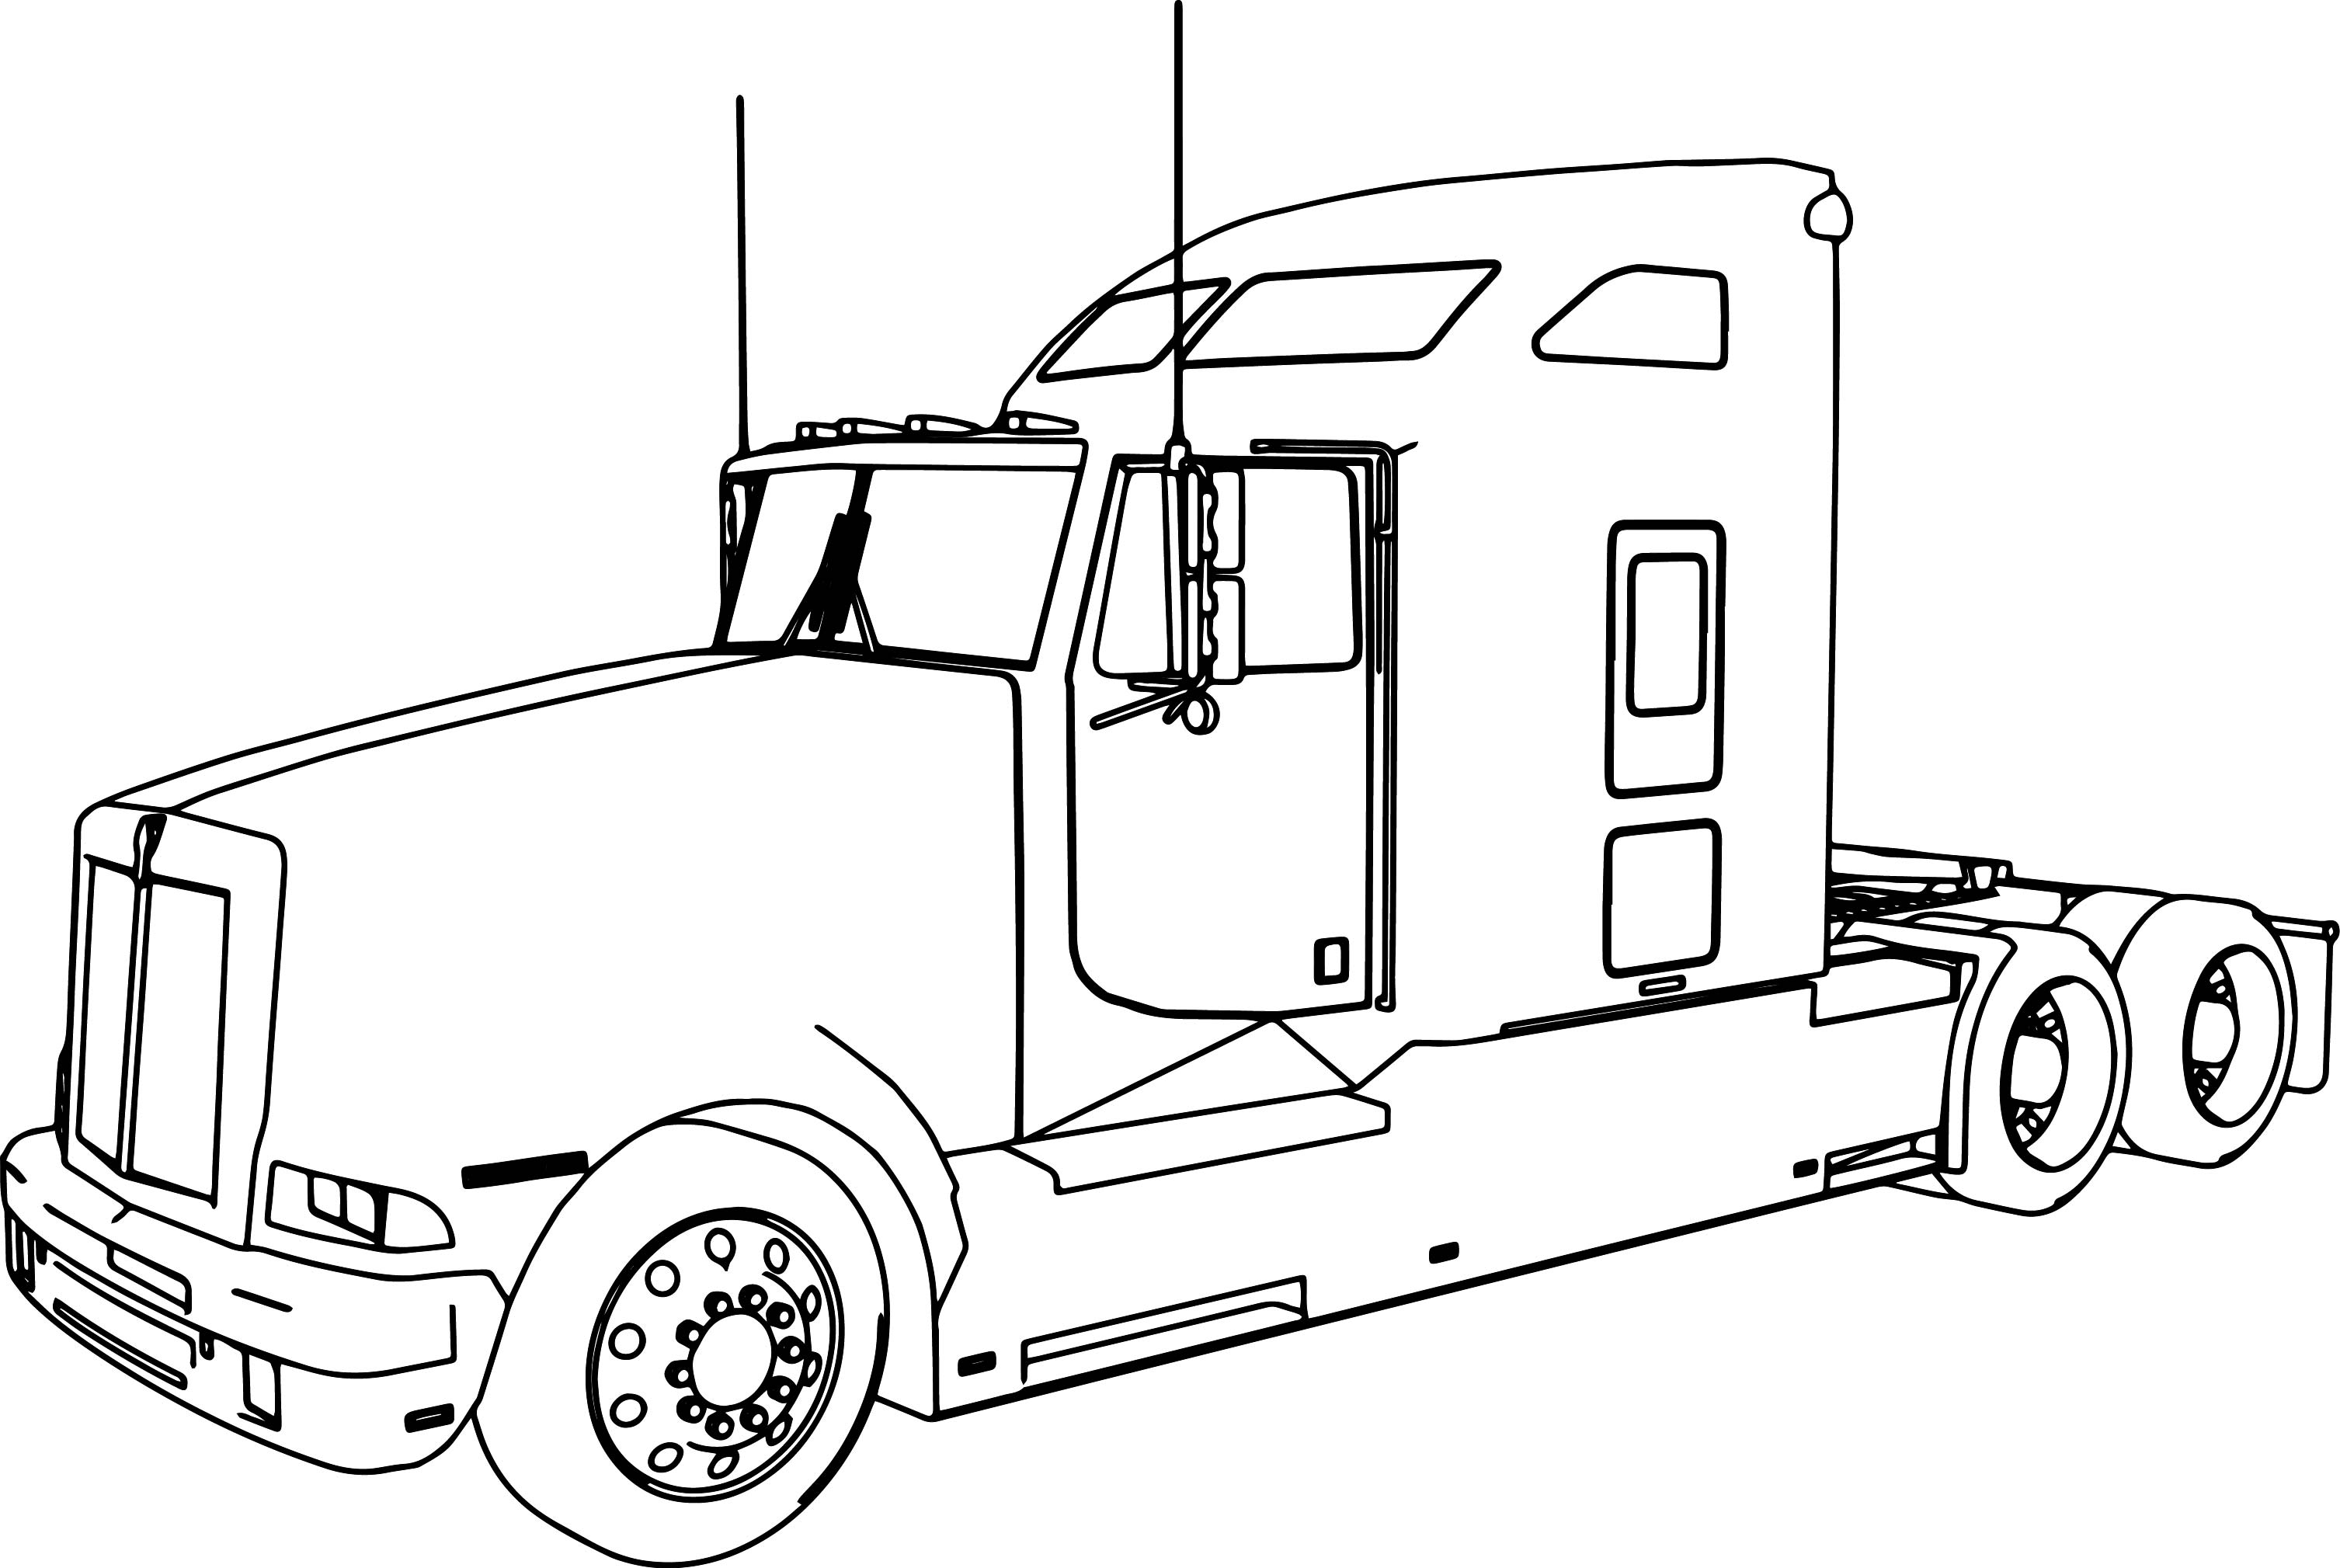 Tractor Trailer Drawing At Getdrawings